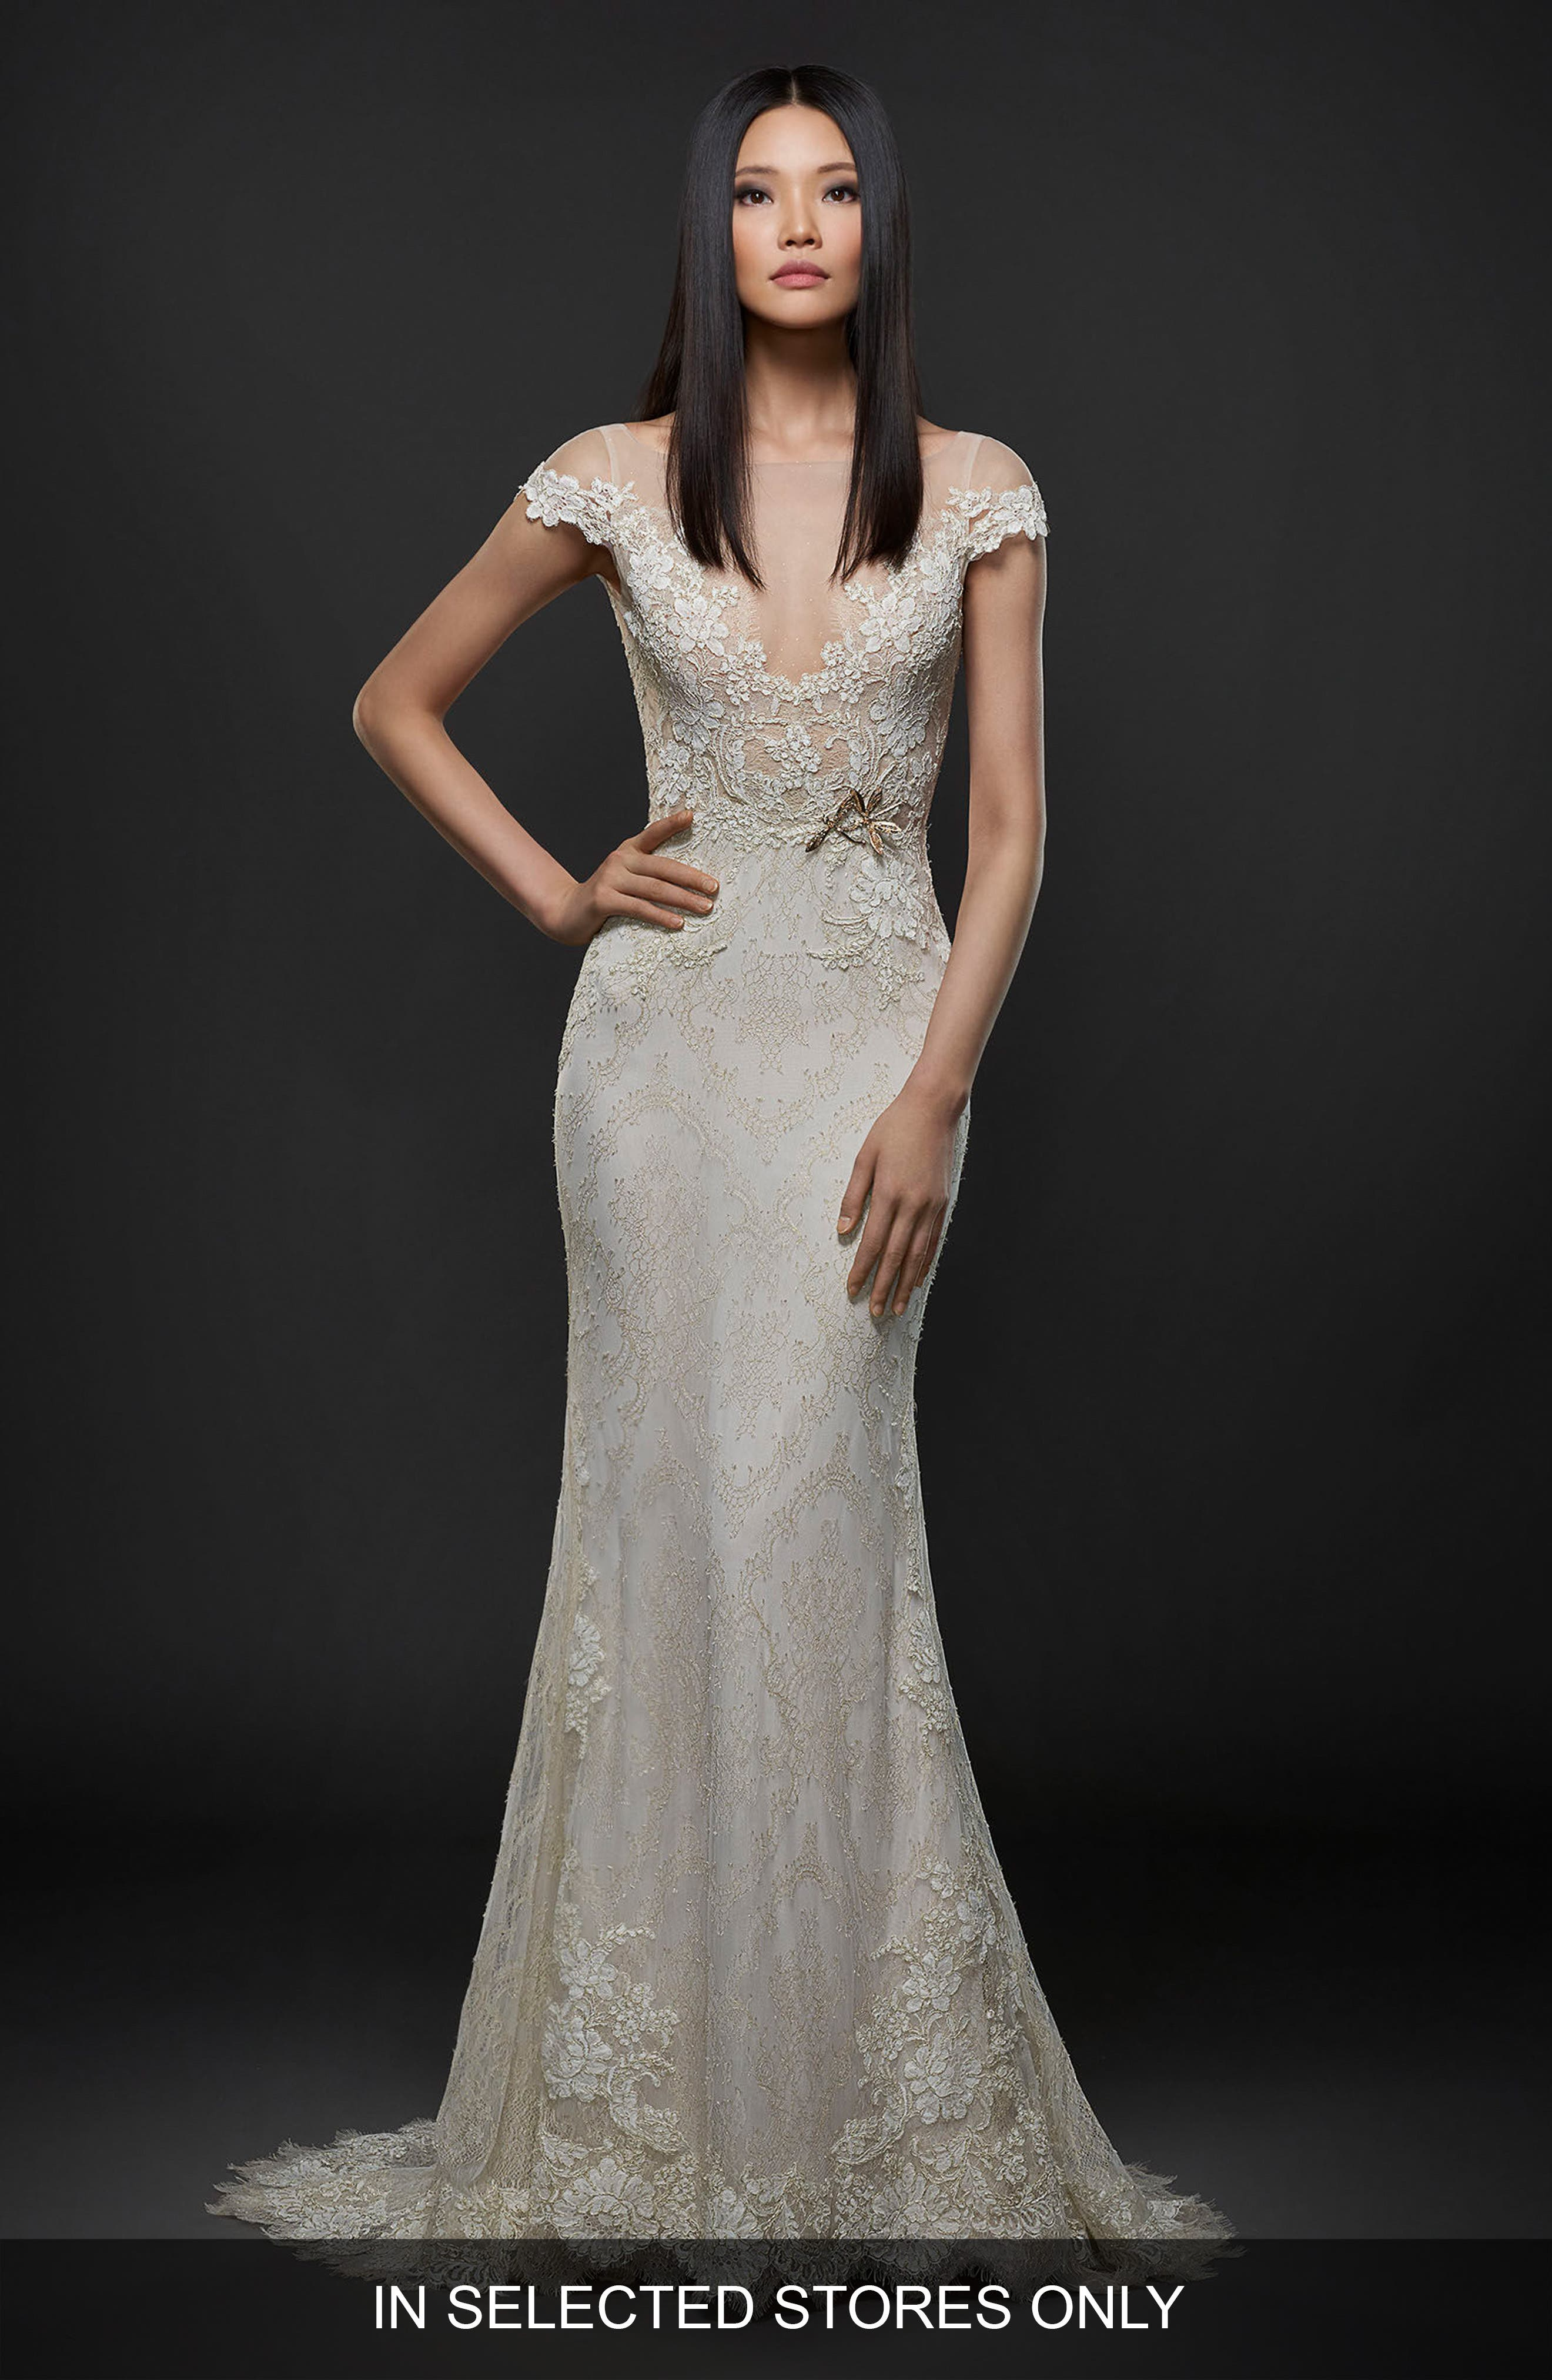 Embroidered Lace Cap Sleeve Gown,                             Main thumbnail 1, color,                             IVORY/GOLD